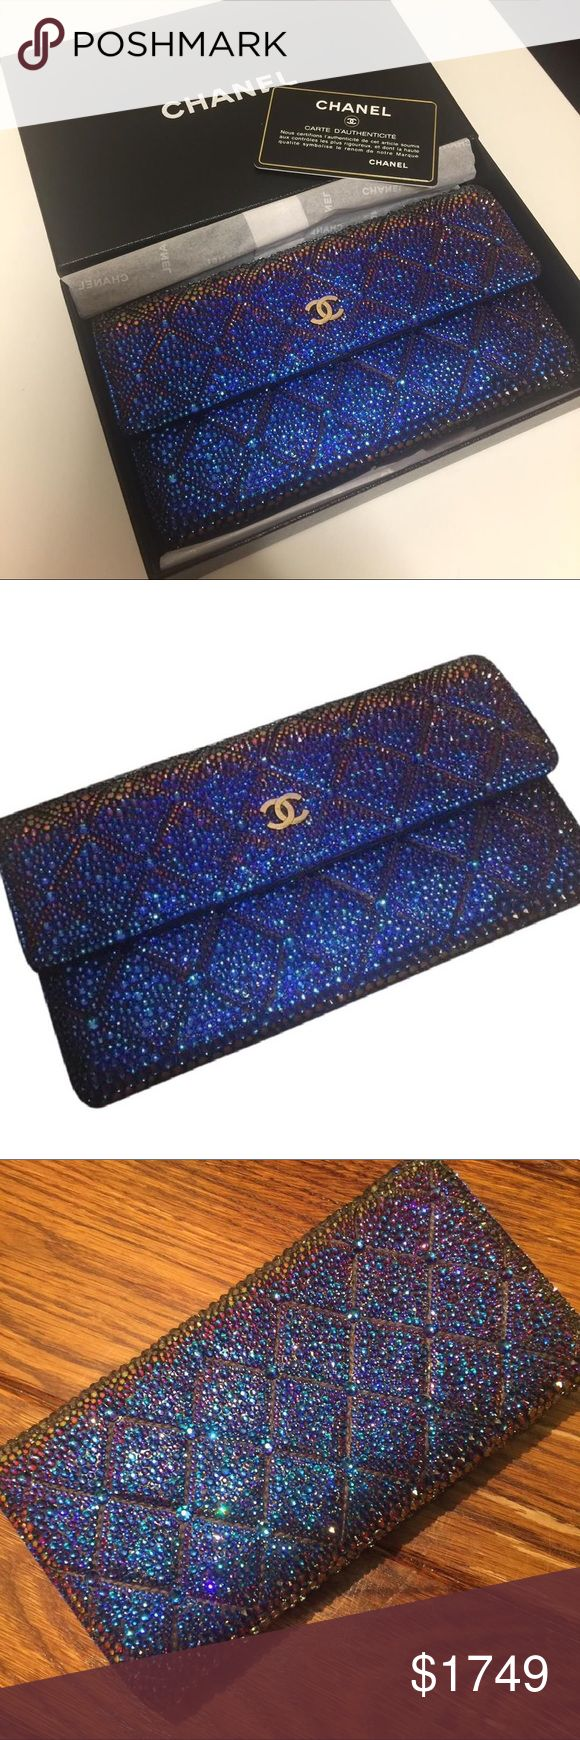 CHANEL STRASS WALLET CLUTCH AMAZING!!!! 100% Authentic #Chanel Quilted wallet with Swarovski crystals • BEAUTIFUL Custom crystal wallet in meridian blue Swarovski crystal • strass work is excellent • ONE OF A KIND • iridescent color changes in the light • STUNNING wallet/clutch • OVER 10,000 CRYSTALS USED • box & authenticity card are included • MUST SEE VIDEO ON INSTAGRAM: @theluxurylocker CHANEL Bags Wallets